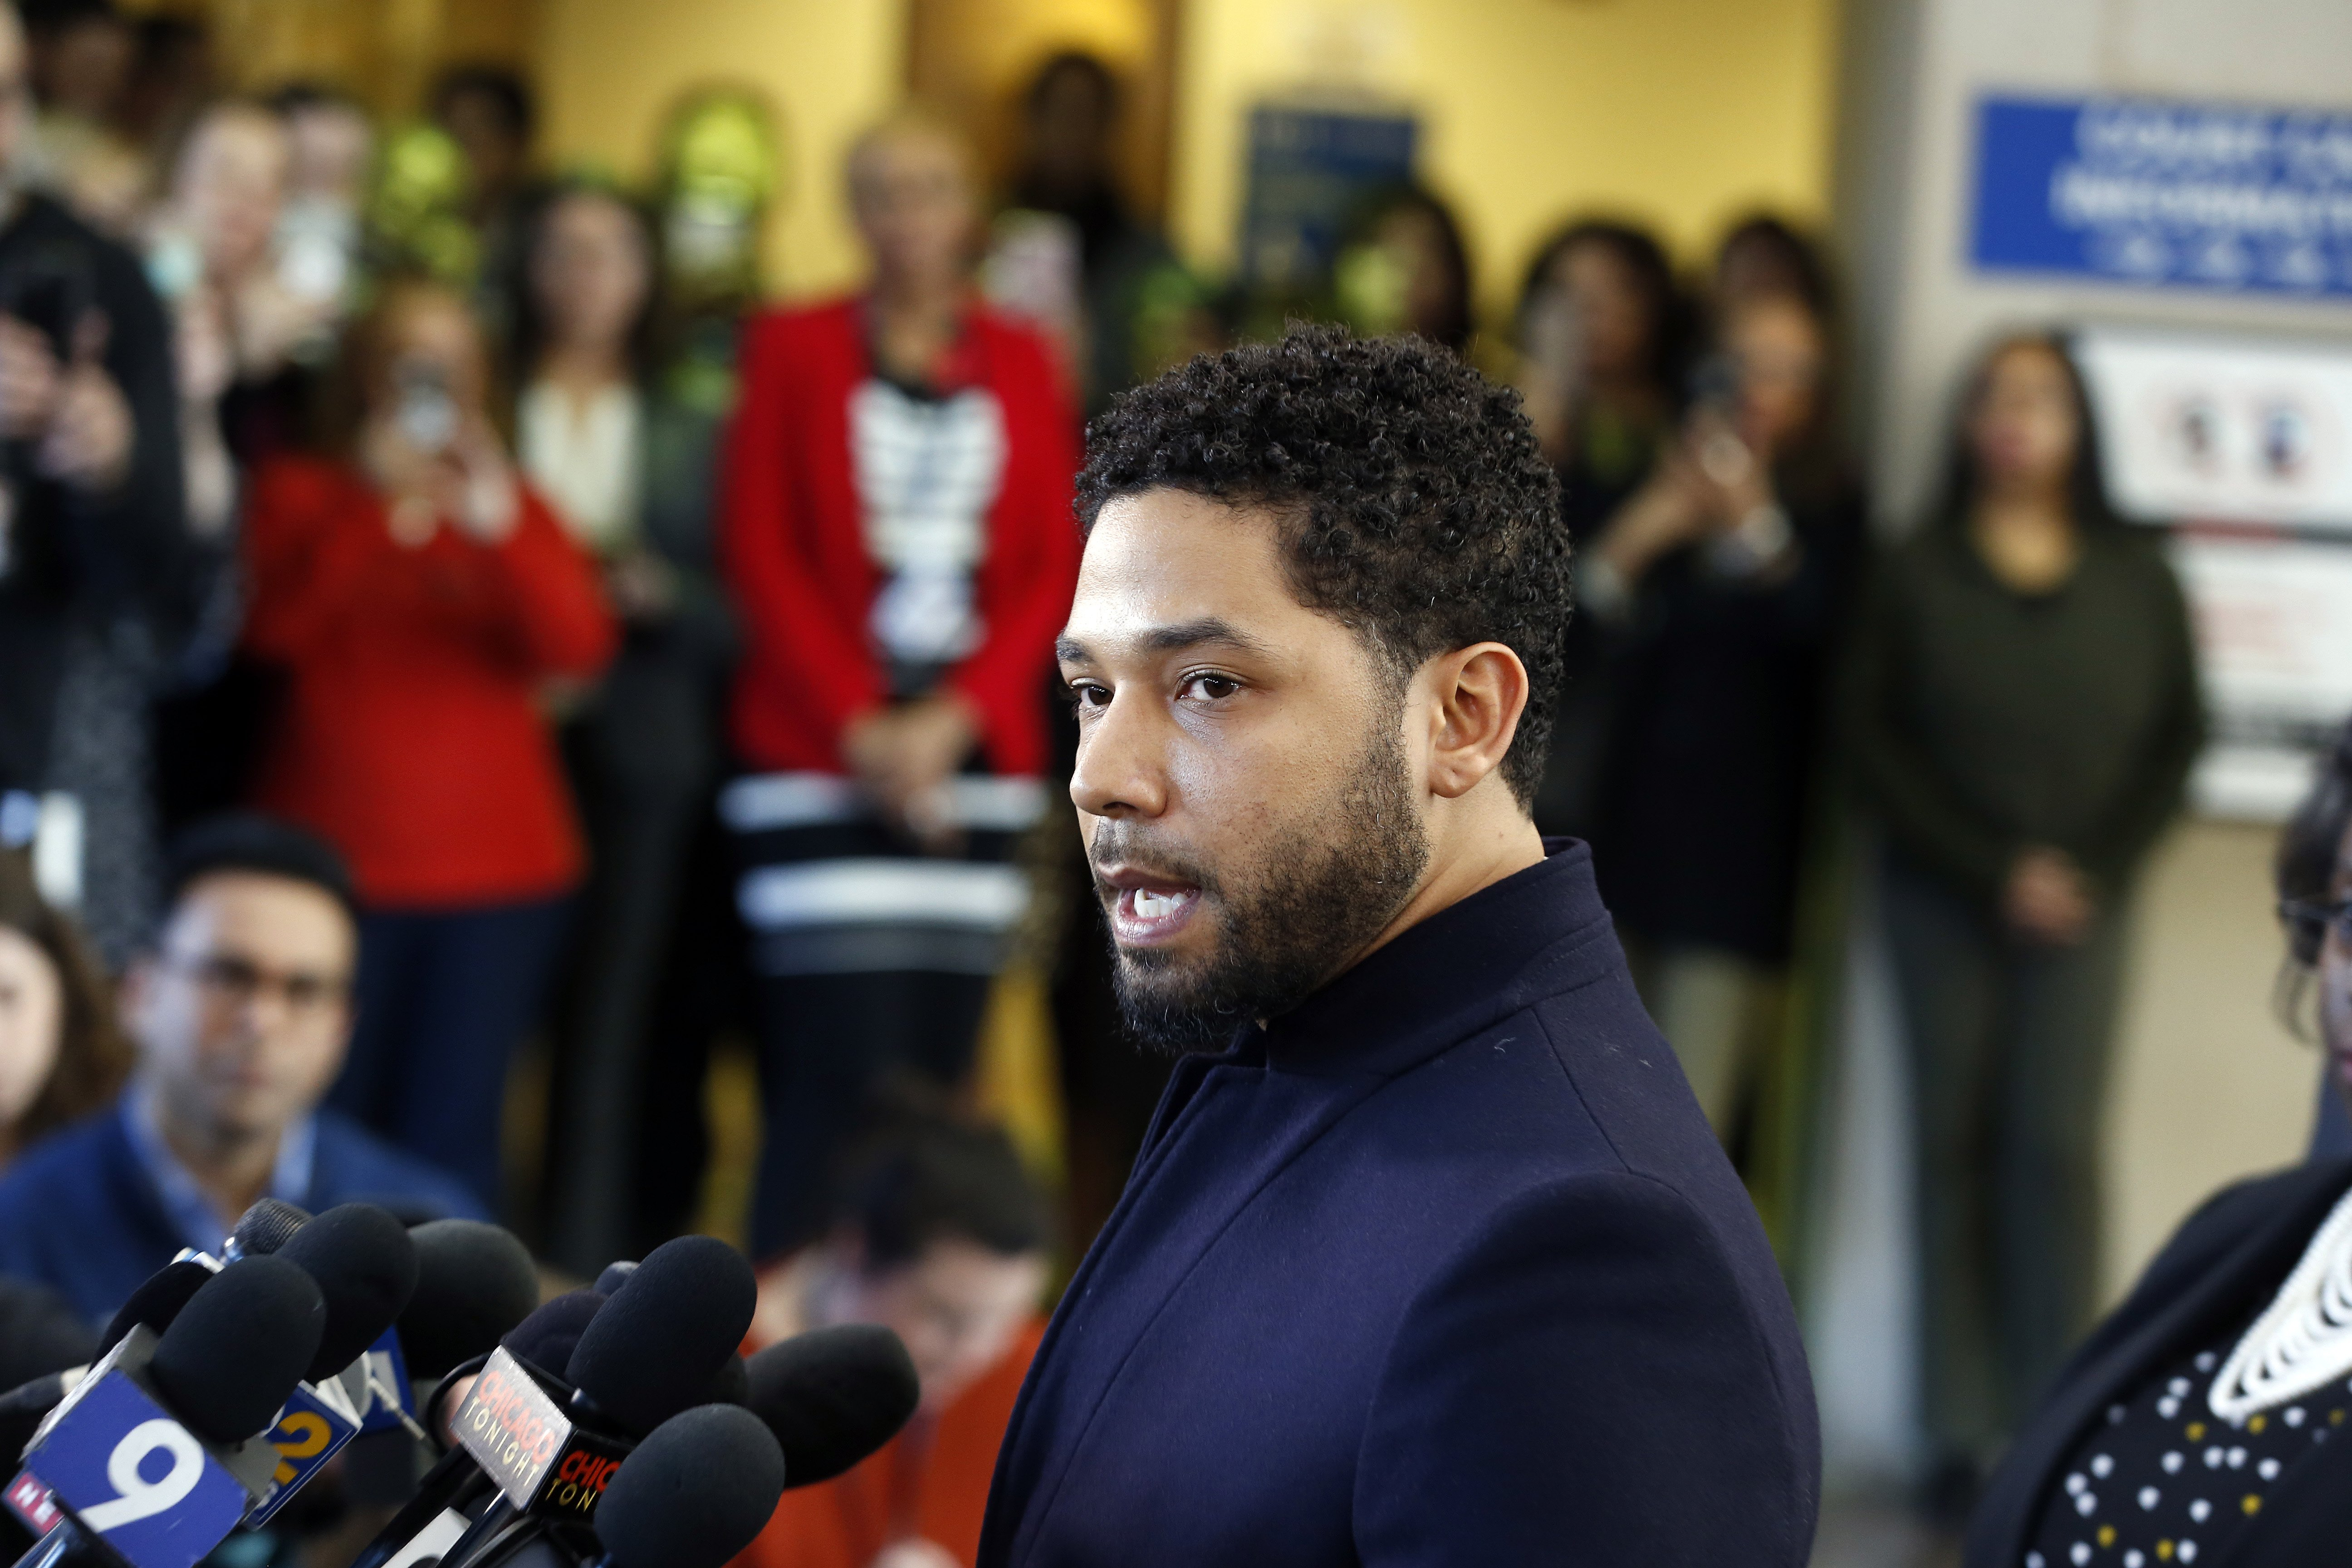 Jussie Smollett speaking to the media after all charges against him were dropped in March 2019. | Photo: Getty Images